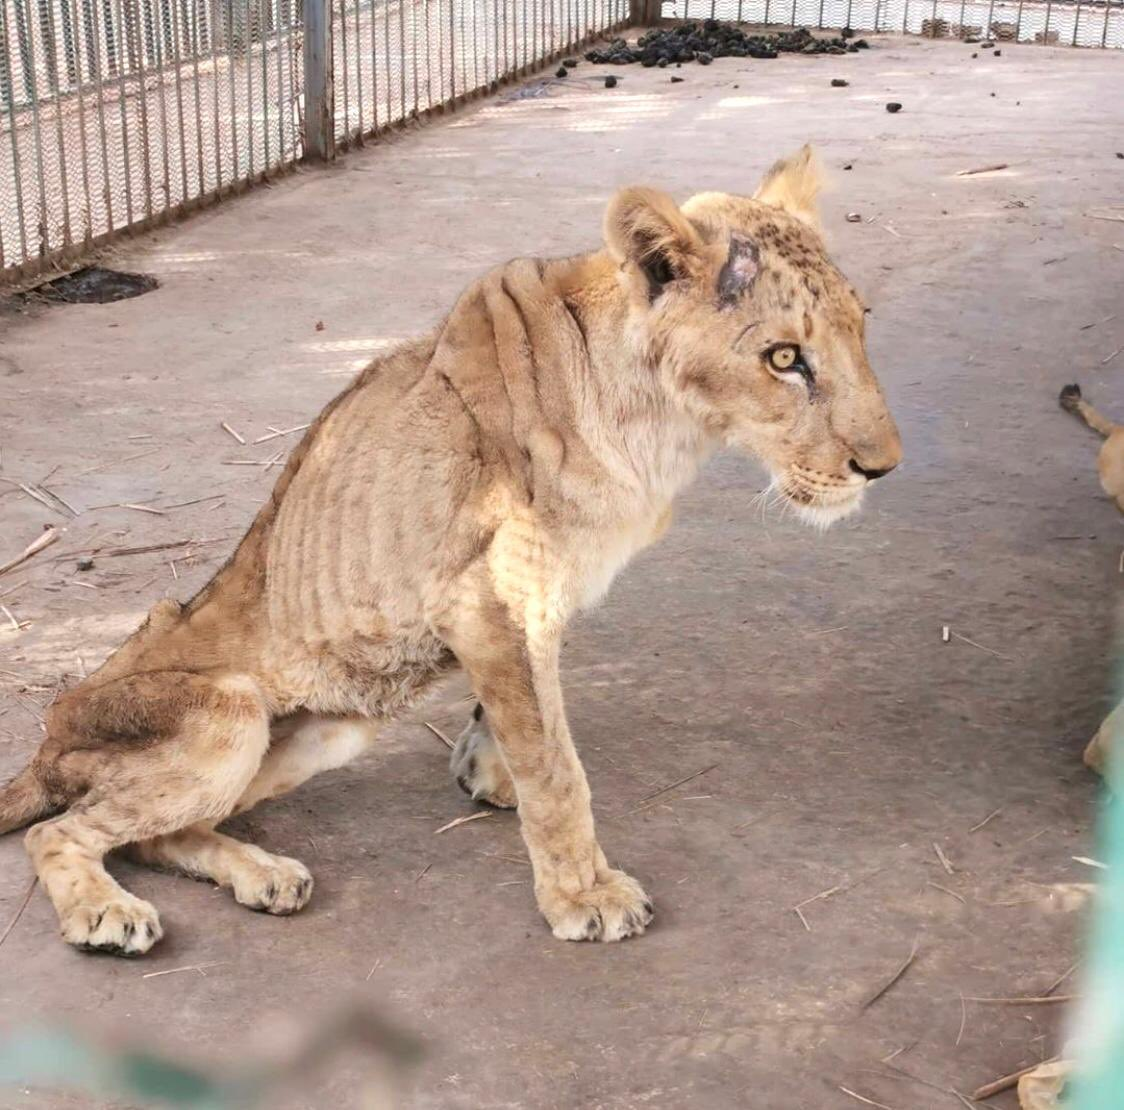 Thank you #0smano for notifying the authorities about the horrific state of 3 #lions at #AlQurashiGarden in #Sudan. The lions are skin & bones, one has already died due to starvation & neglect.💔The incredible @fourpawsint is sending emergency rescue to help save them. 🙏❤️🙌